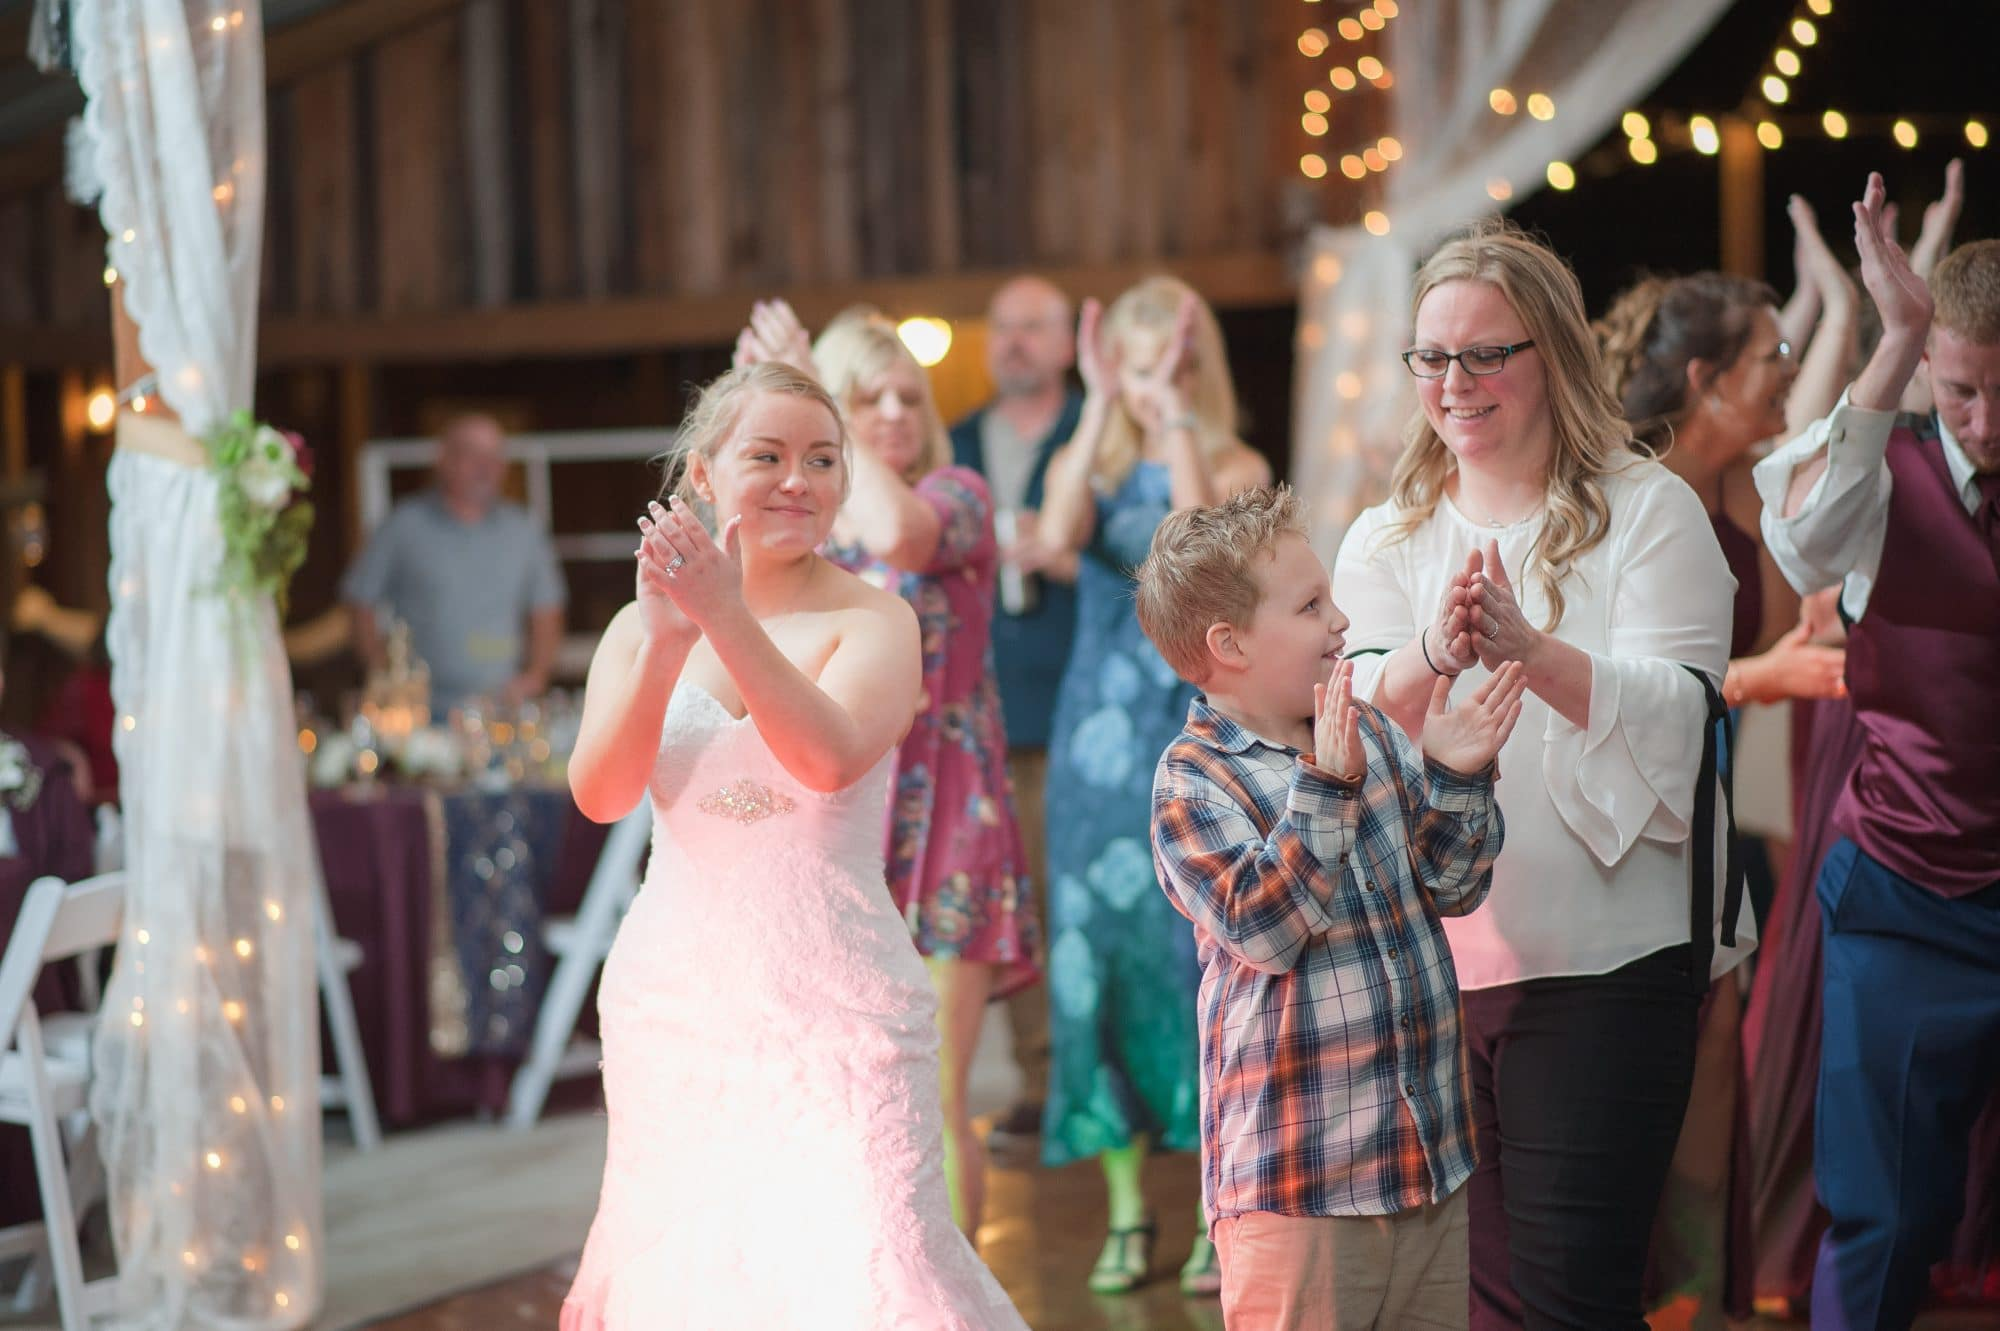 Brittany on dance floor with guests.